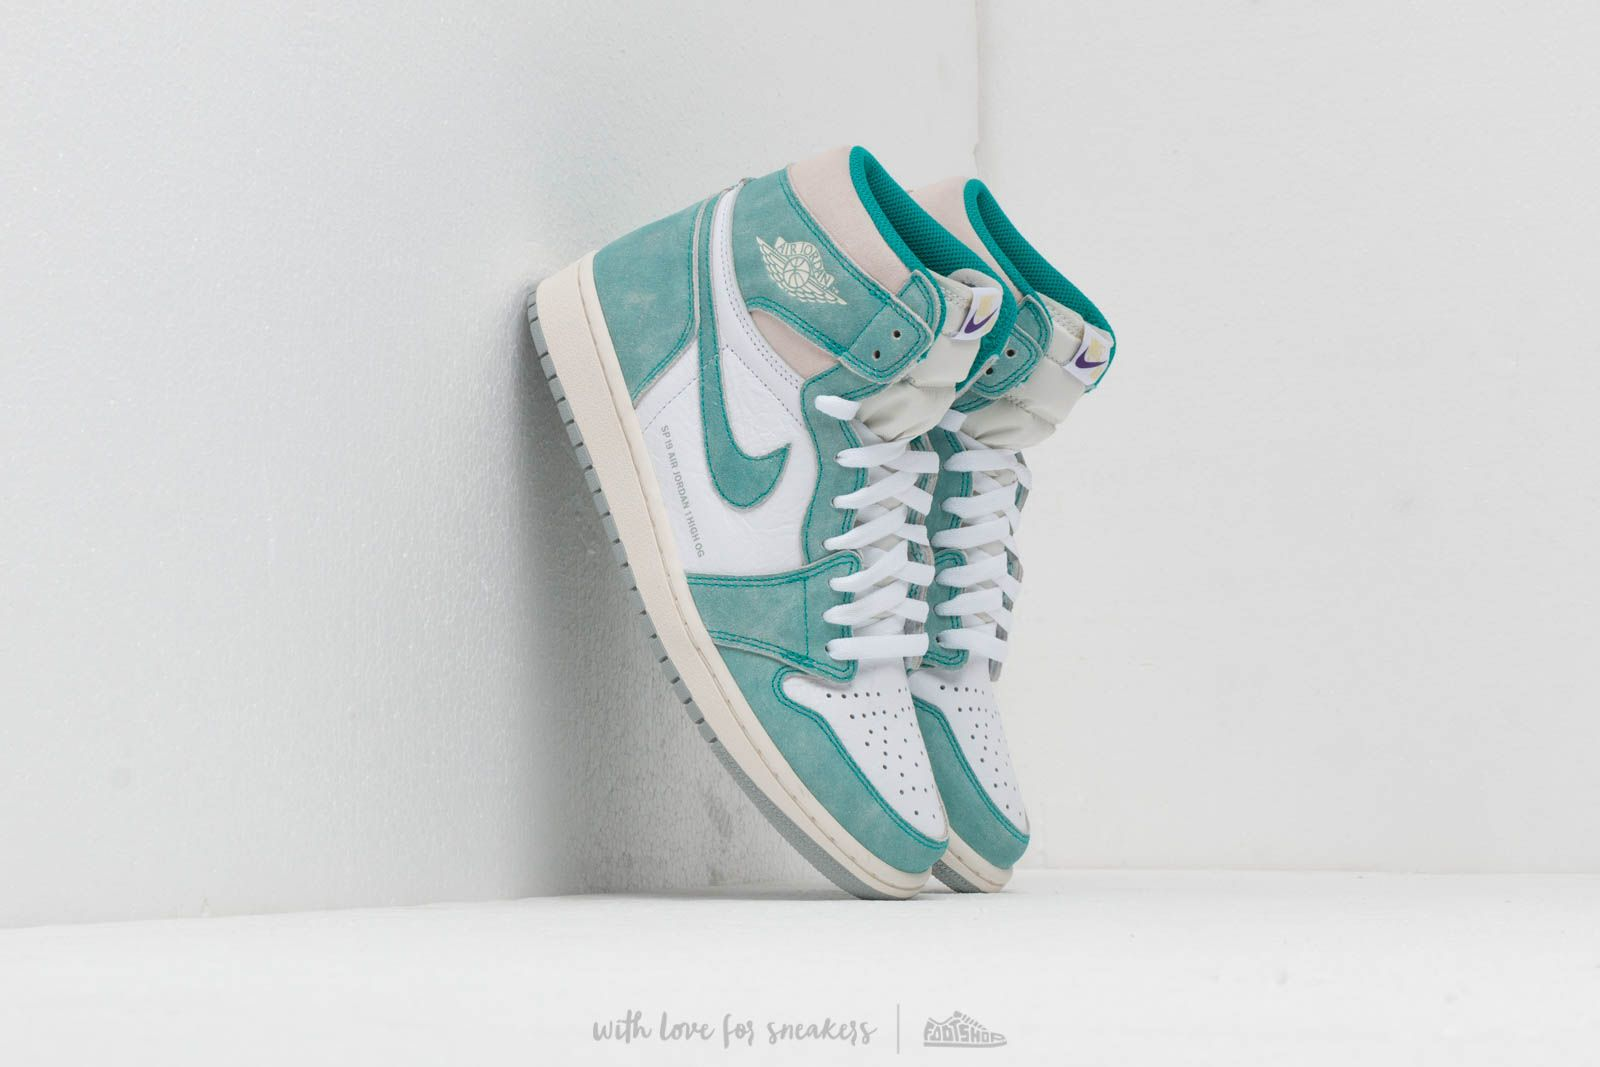 jordan AIR JORDAN 1 RETRO HIGH OG TURBO GREENSAIL WHITE LT